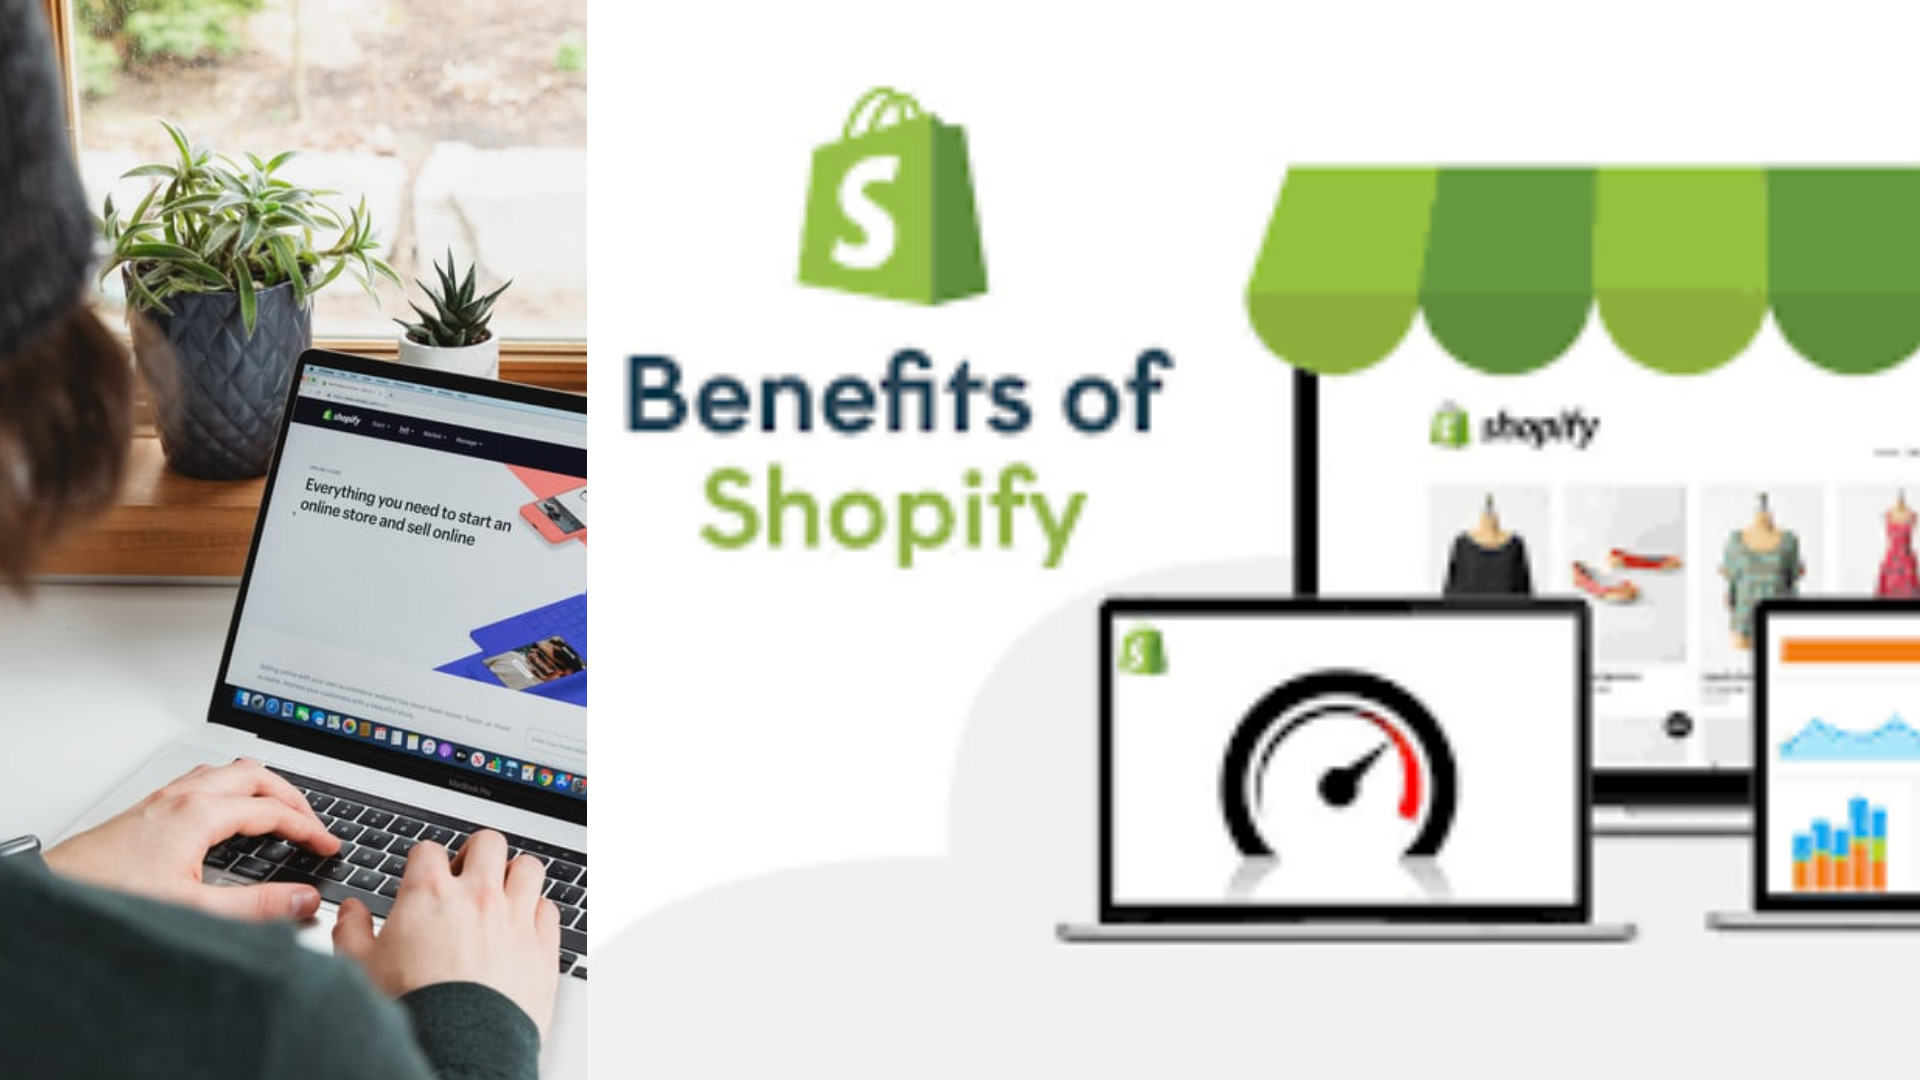 I will do sales boosting shopify marketing, ecommerce marketing, shopify store promotion, FiverrBox